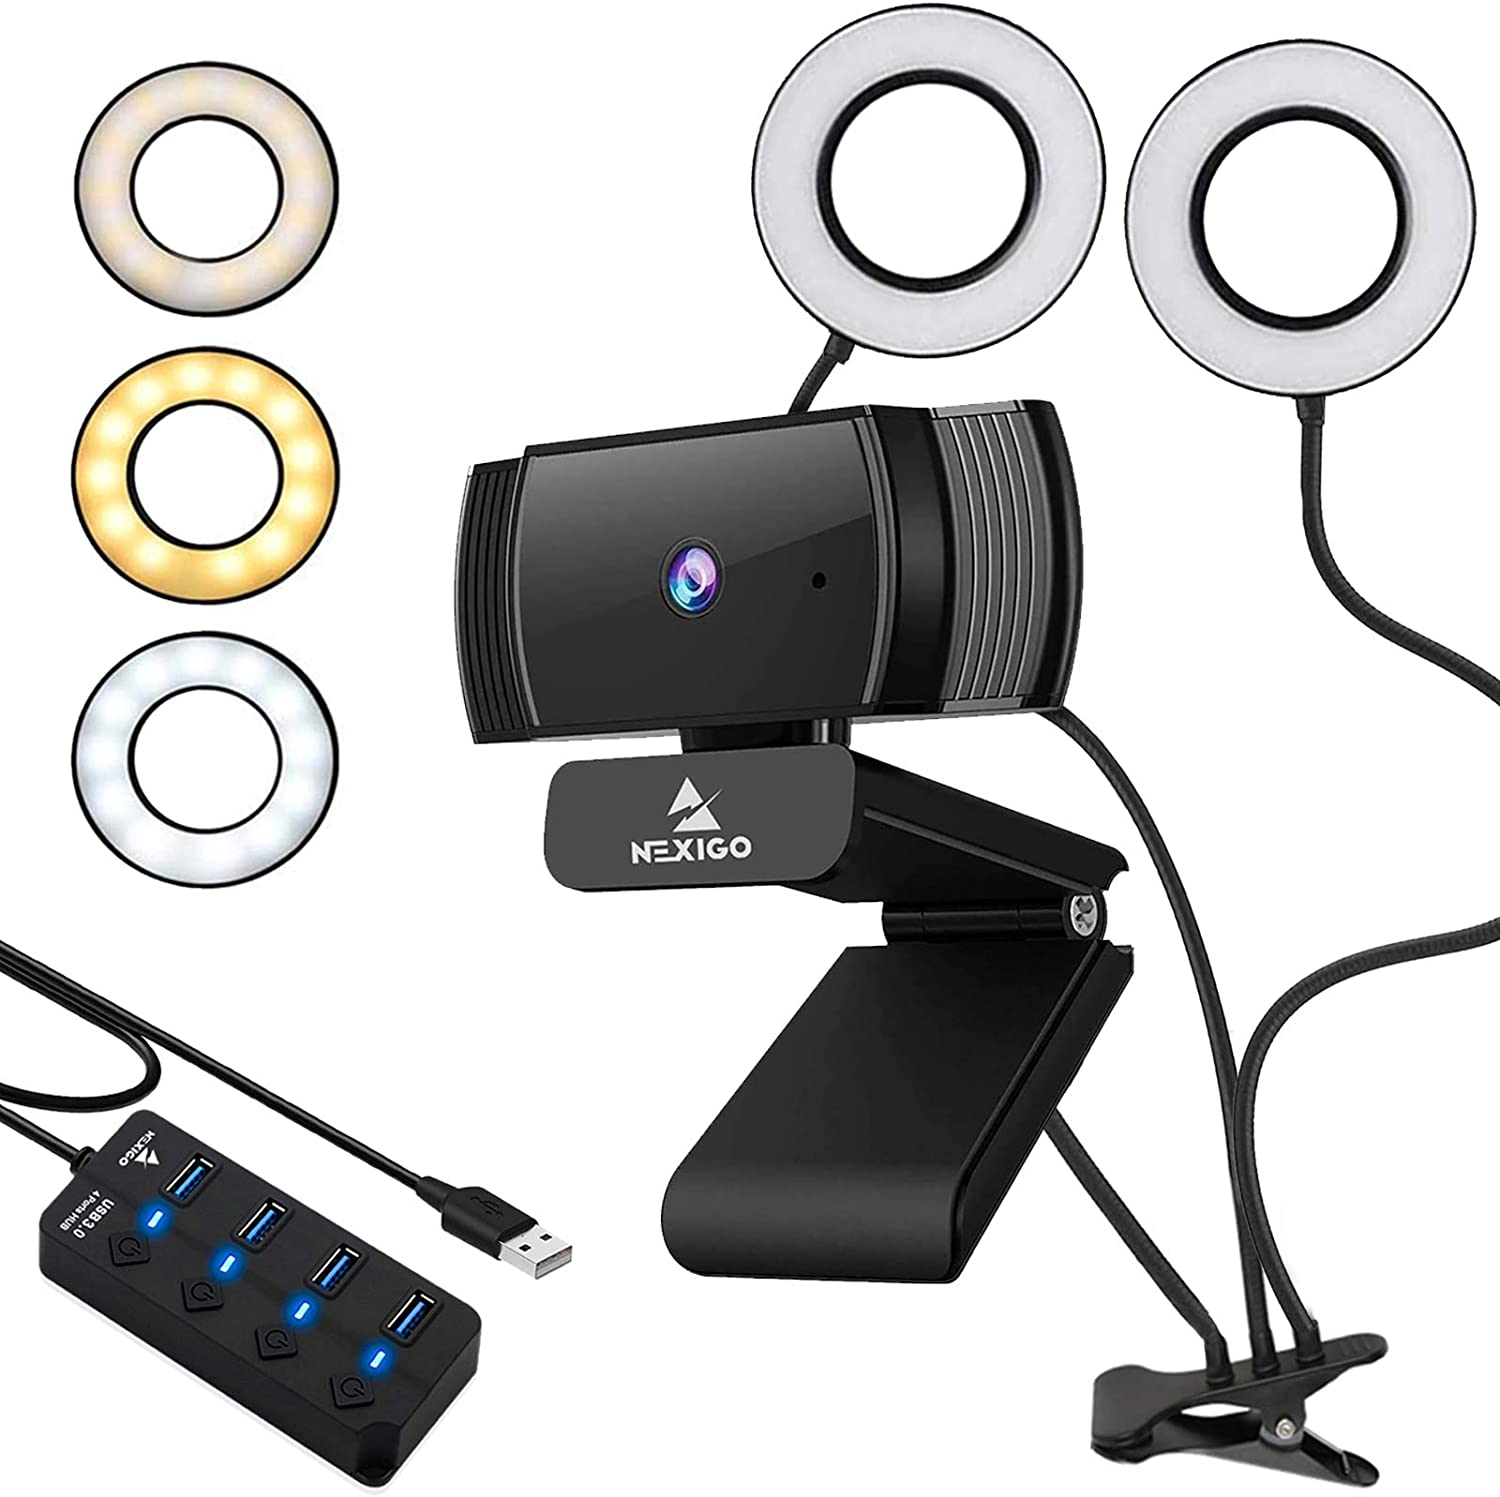 1080P AutoFocus Webcam with 2ft USB Hub Switch, Microphone, 3.5 Inch Dual Selfie Ring Light, Mount Stand, and Privacy Cover, for Streaming Online Class, Zoom Skype MS Teams, PC Mac Laptop Desktop